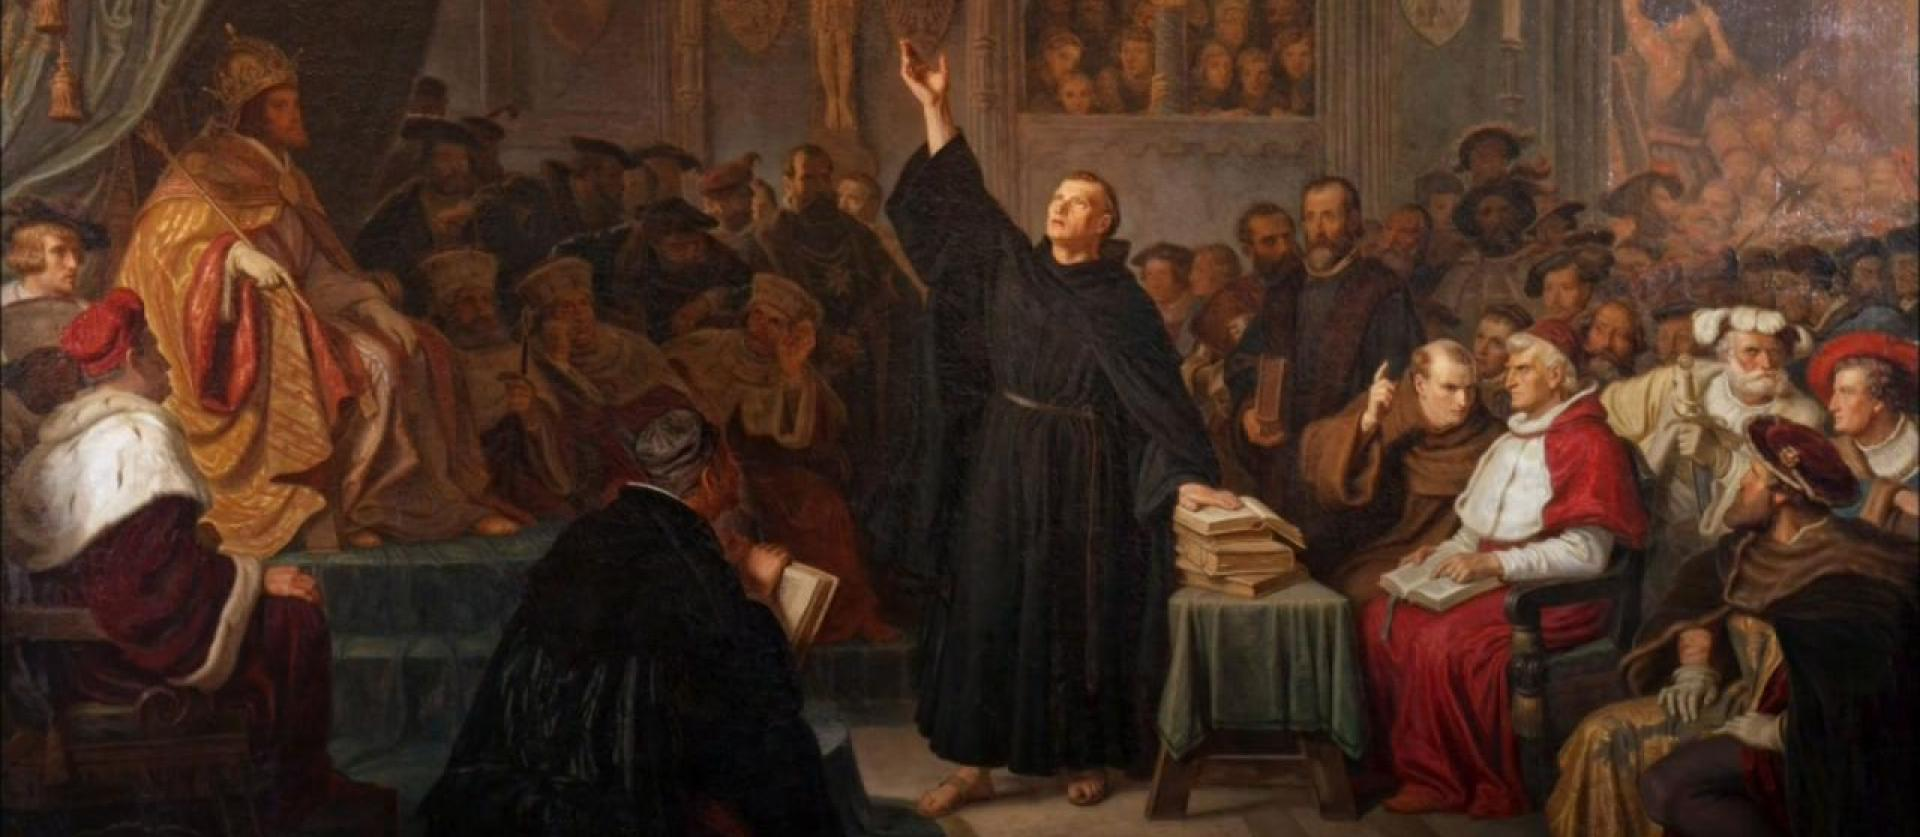 A Look At Protestant Reformation Through Different Lenses